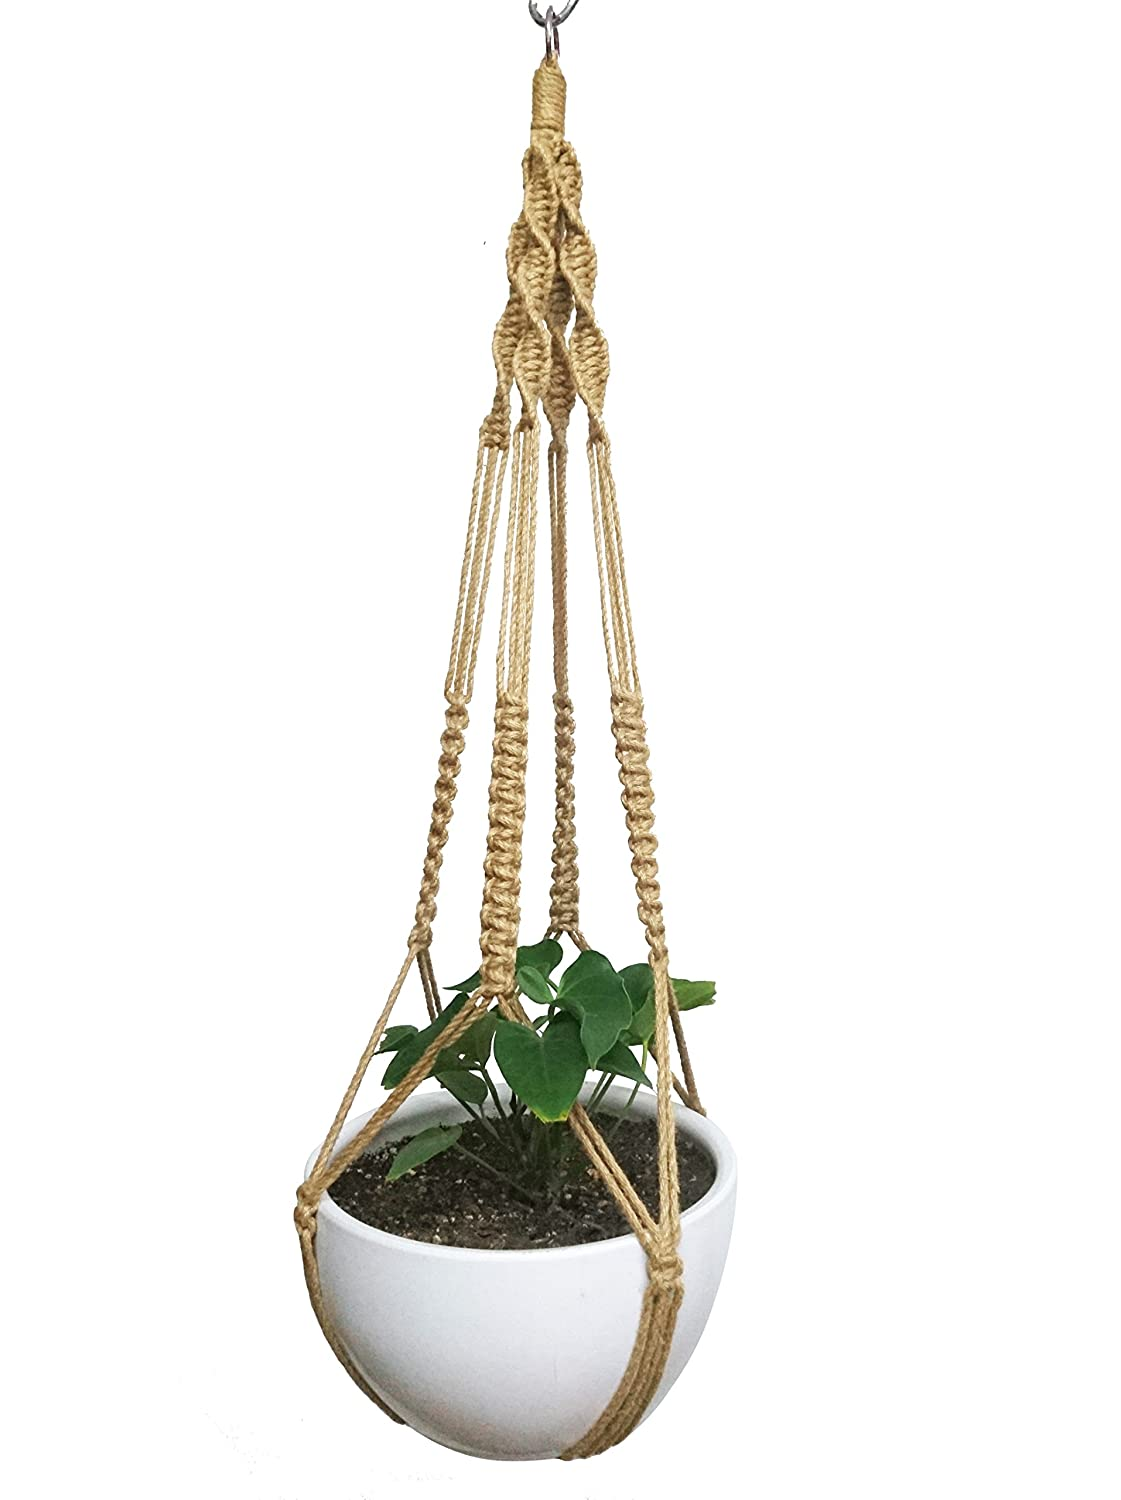 Macrame Plant Hanger Hanging Planter Hemp Rope 4 Legs Plant Hanger with Steel Ring Stand on Bottom 40 Inch without Tassel Pot and Plant Included for 10 inch to 12 inch Planter Pot No Hook